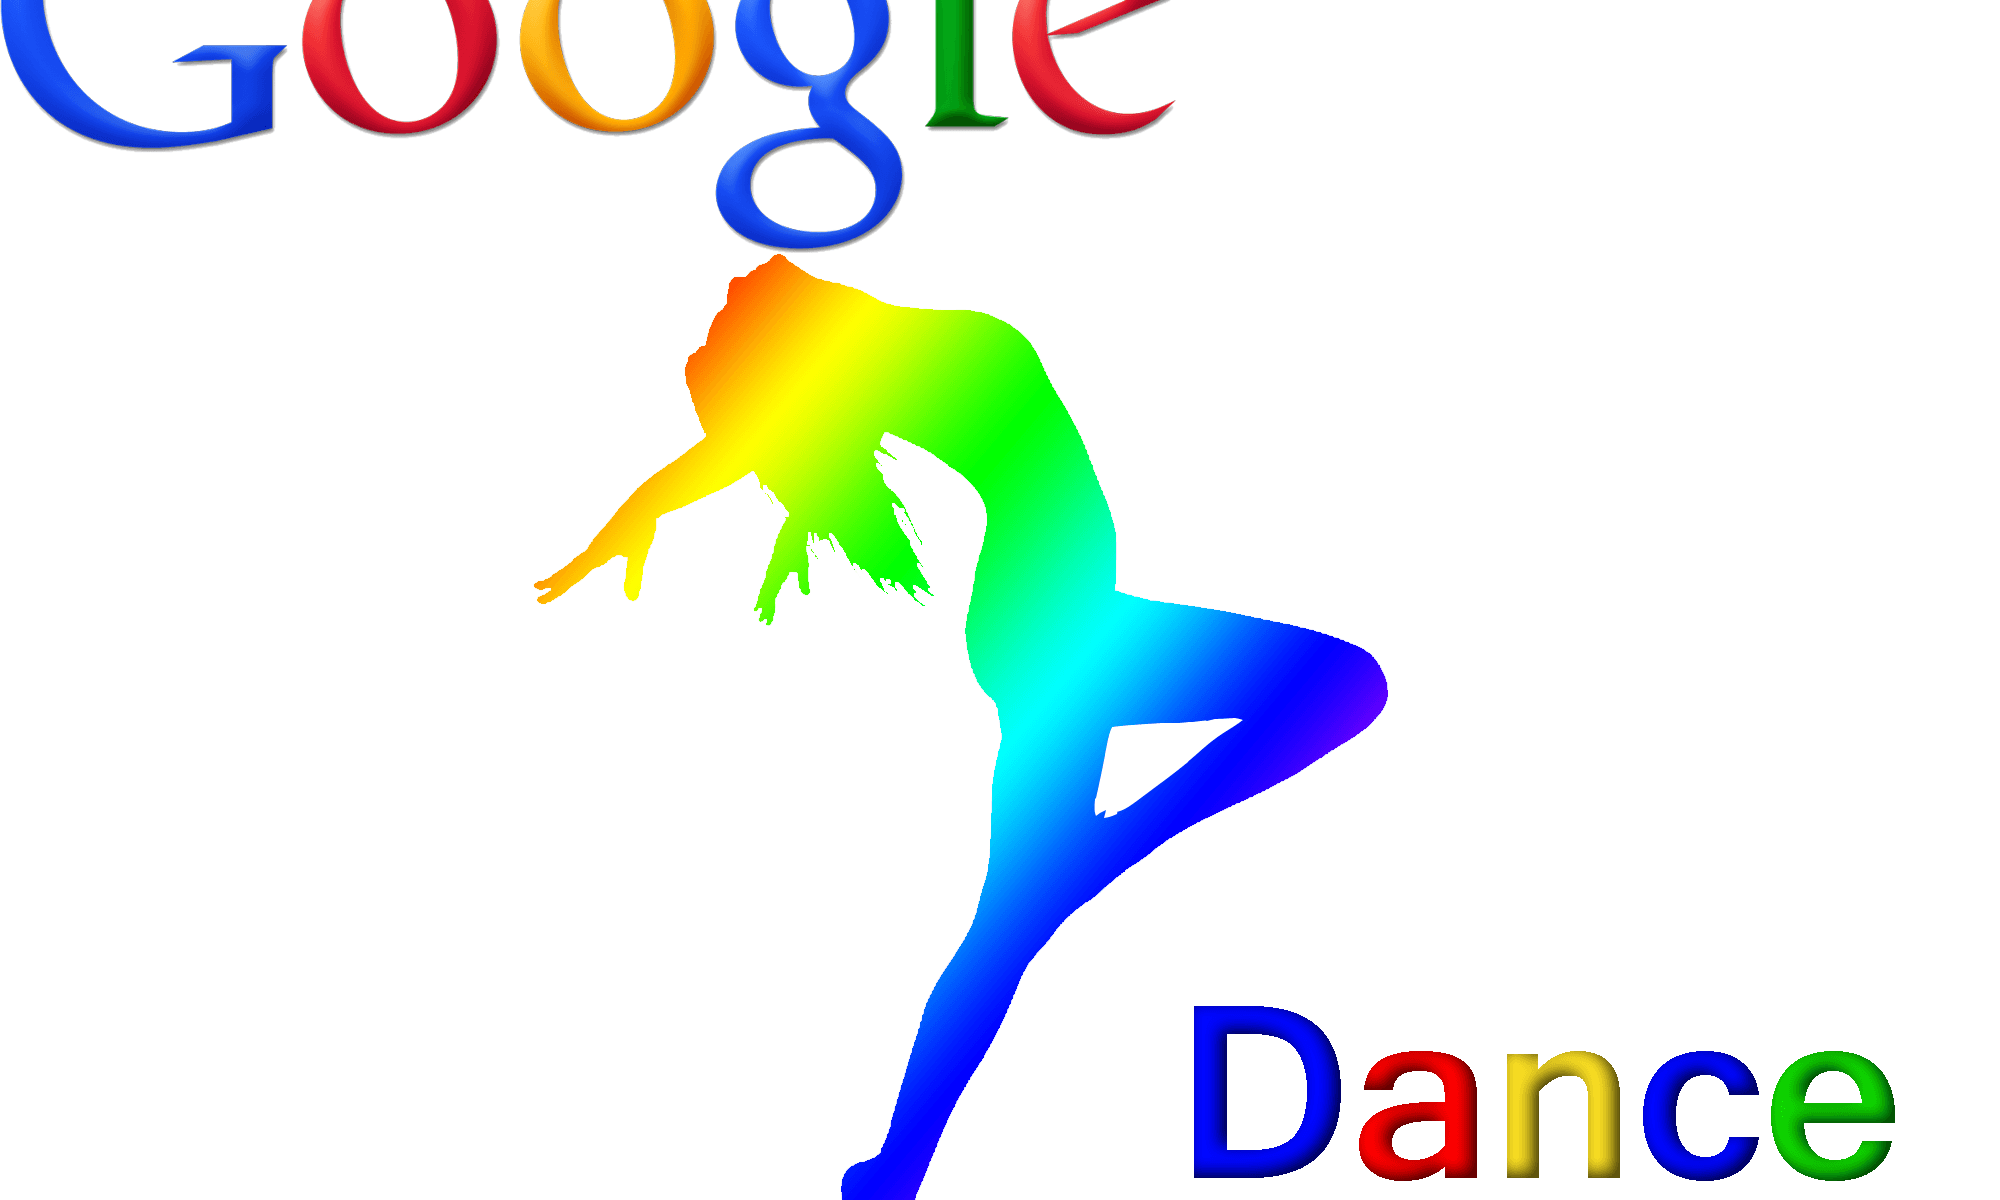 What is the Google Dance?